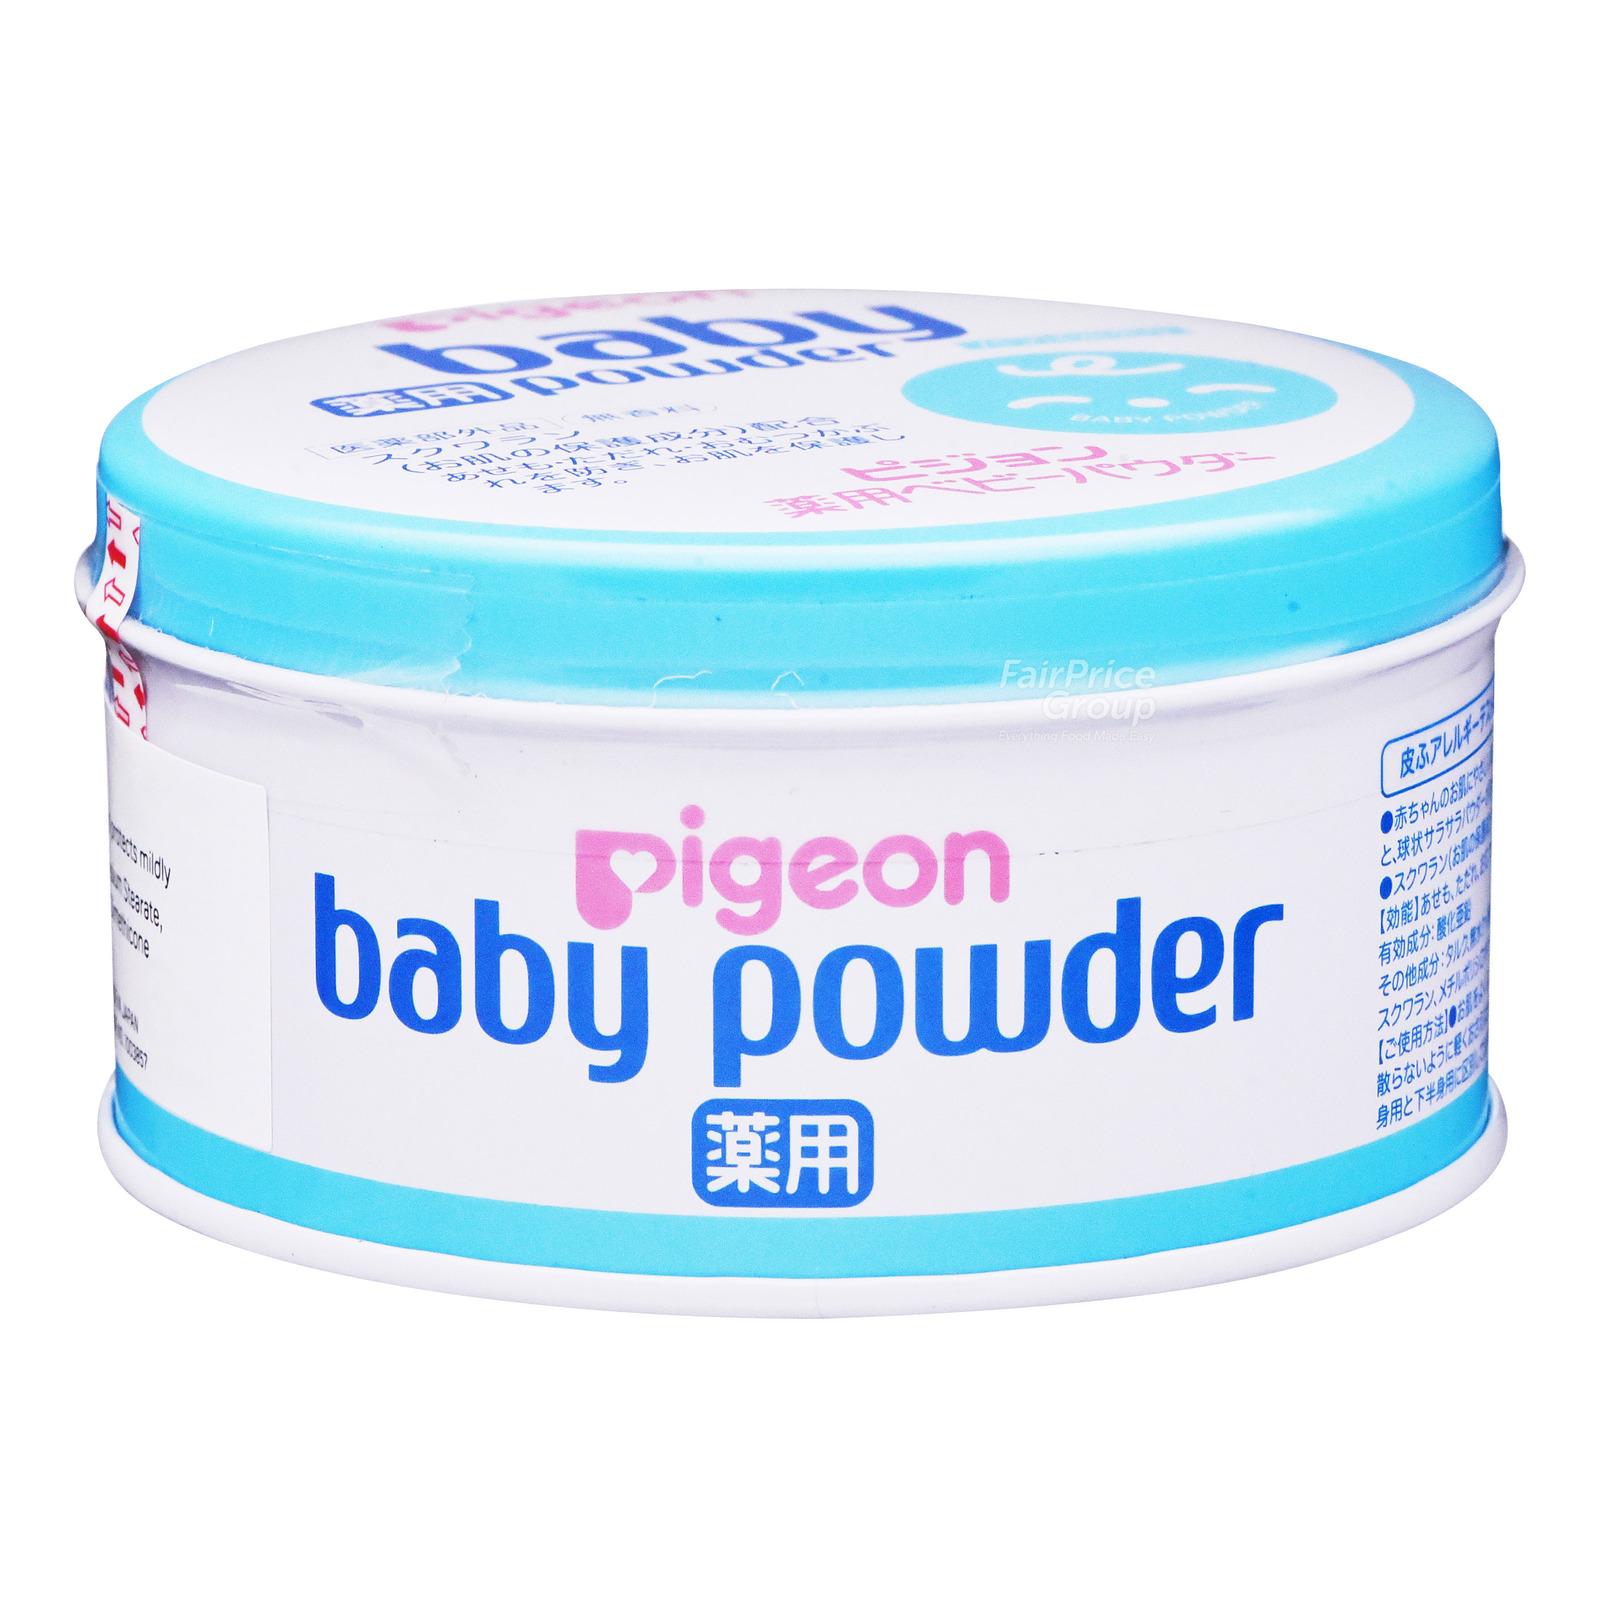 Pigeon Baby Powder - Medicated